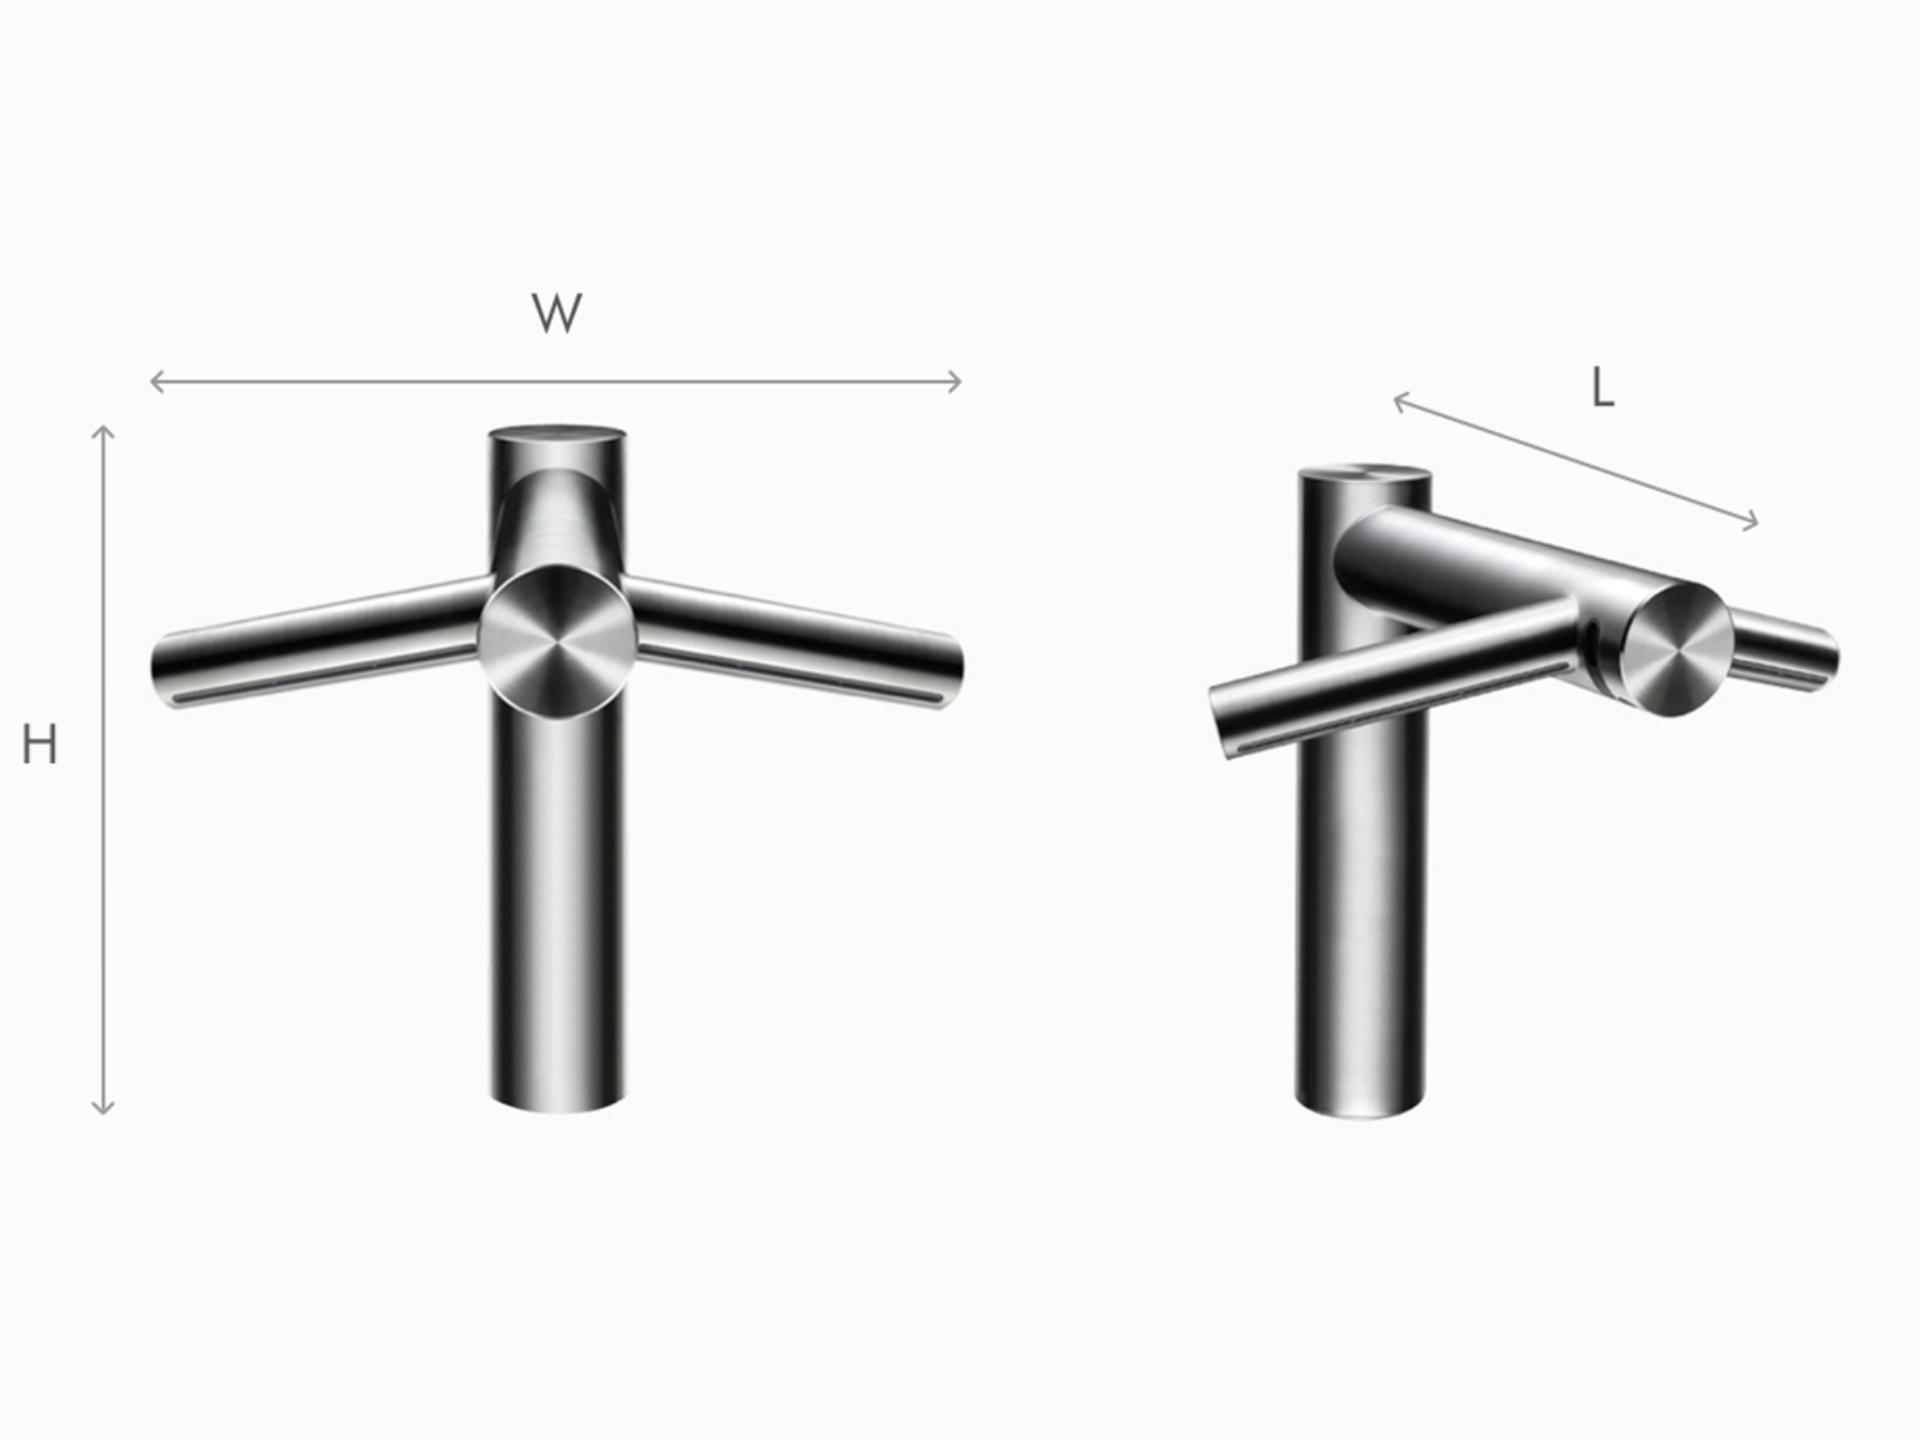 Illustration of Dyson Airblade Wash+Dry tall hand dryer dimensions